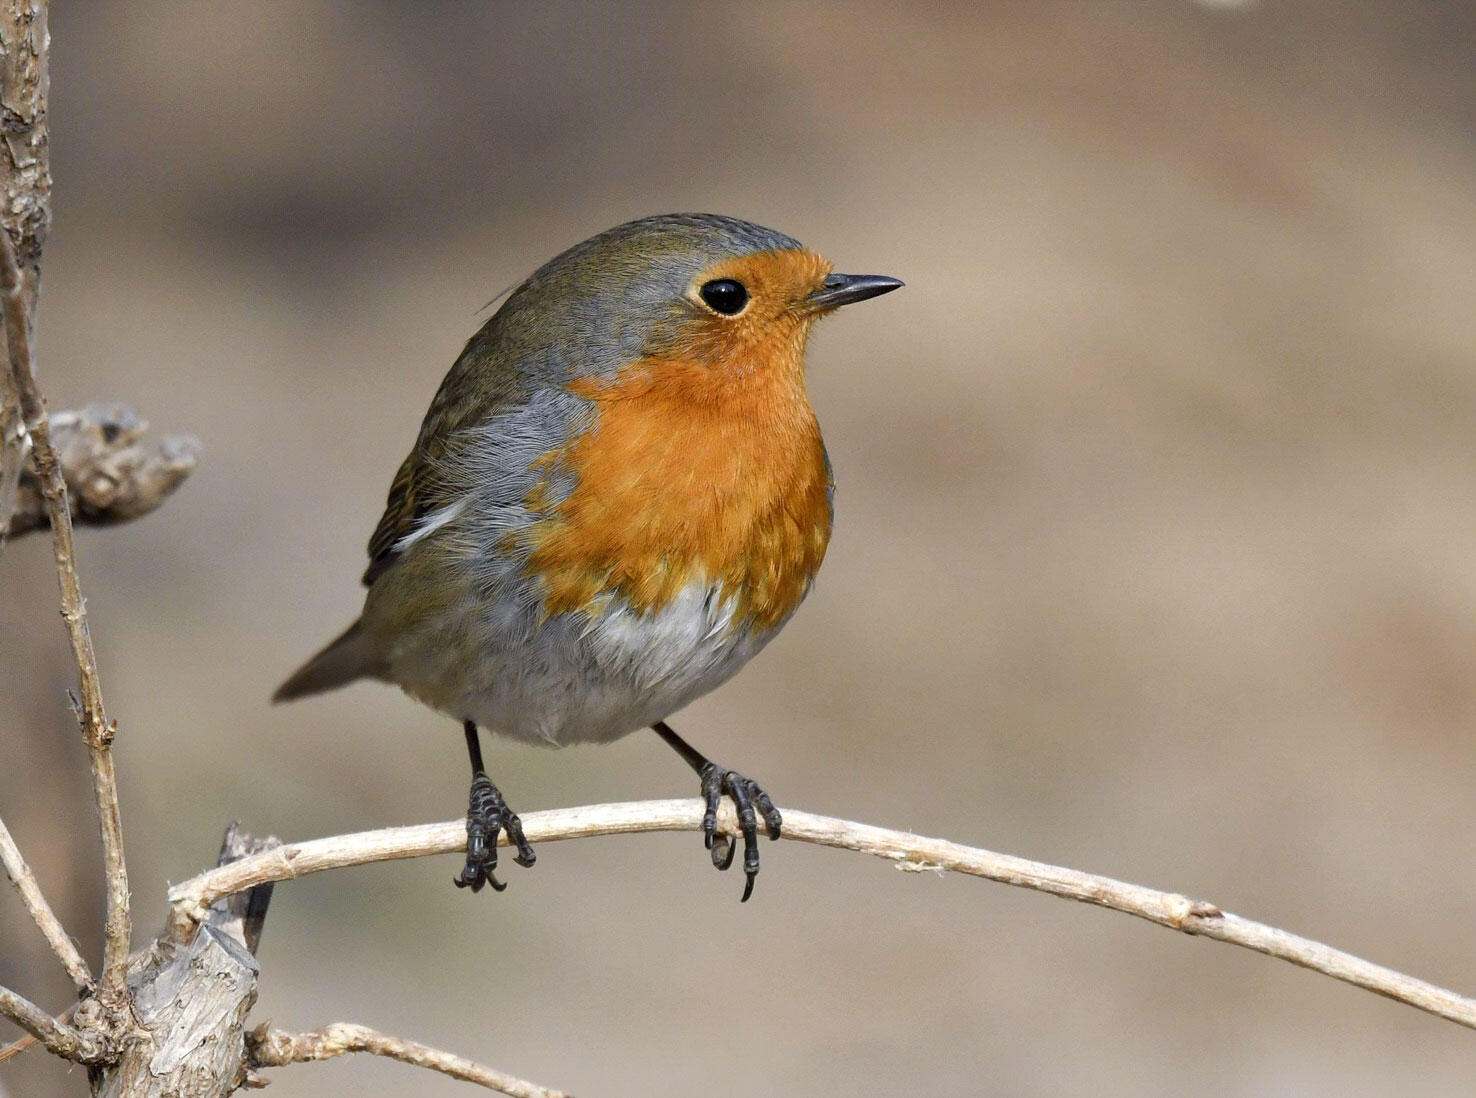 A European Robin, far outside its normal range, poses for admirers in Beijing. Zhang Xiaoling